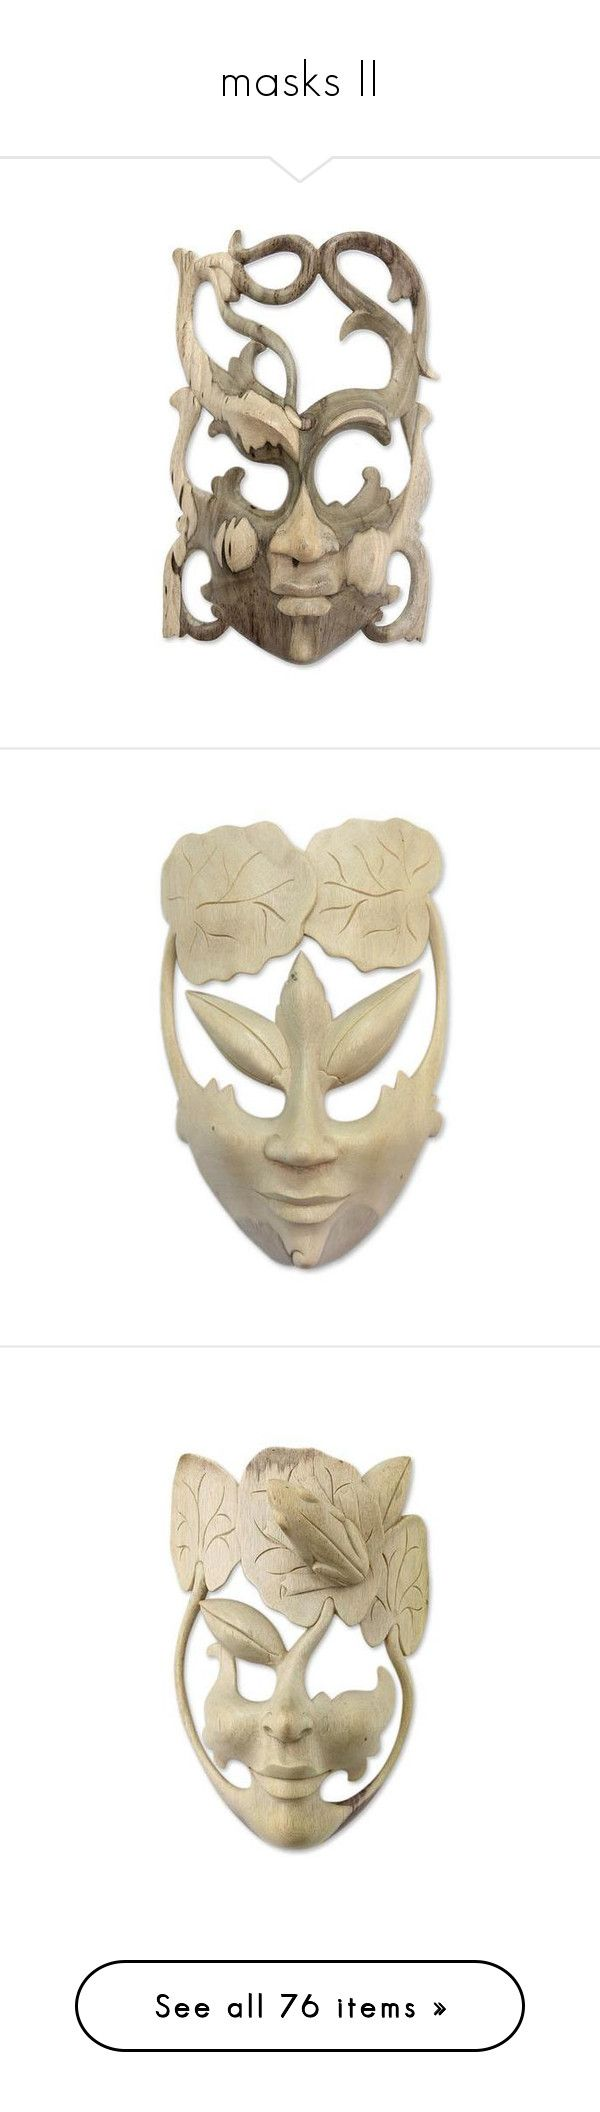 """masks II"" by tettigoniidae ❤ liked on Polyvore featuring home, home decor, masks, balinese contemporary masks, beige, wood home decor, novica masks, novica home decor, wooden home accessories and novica"